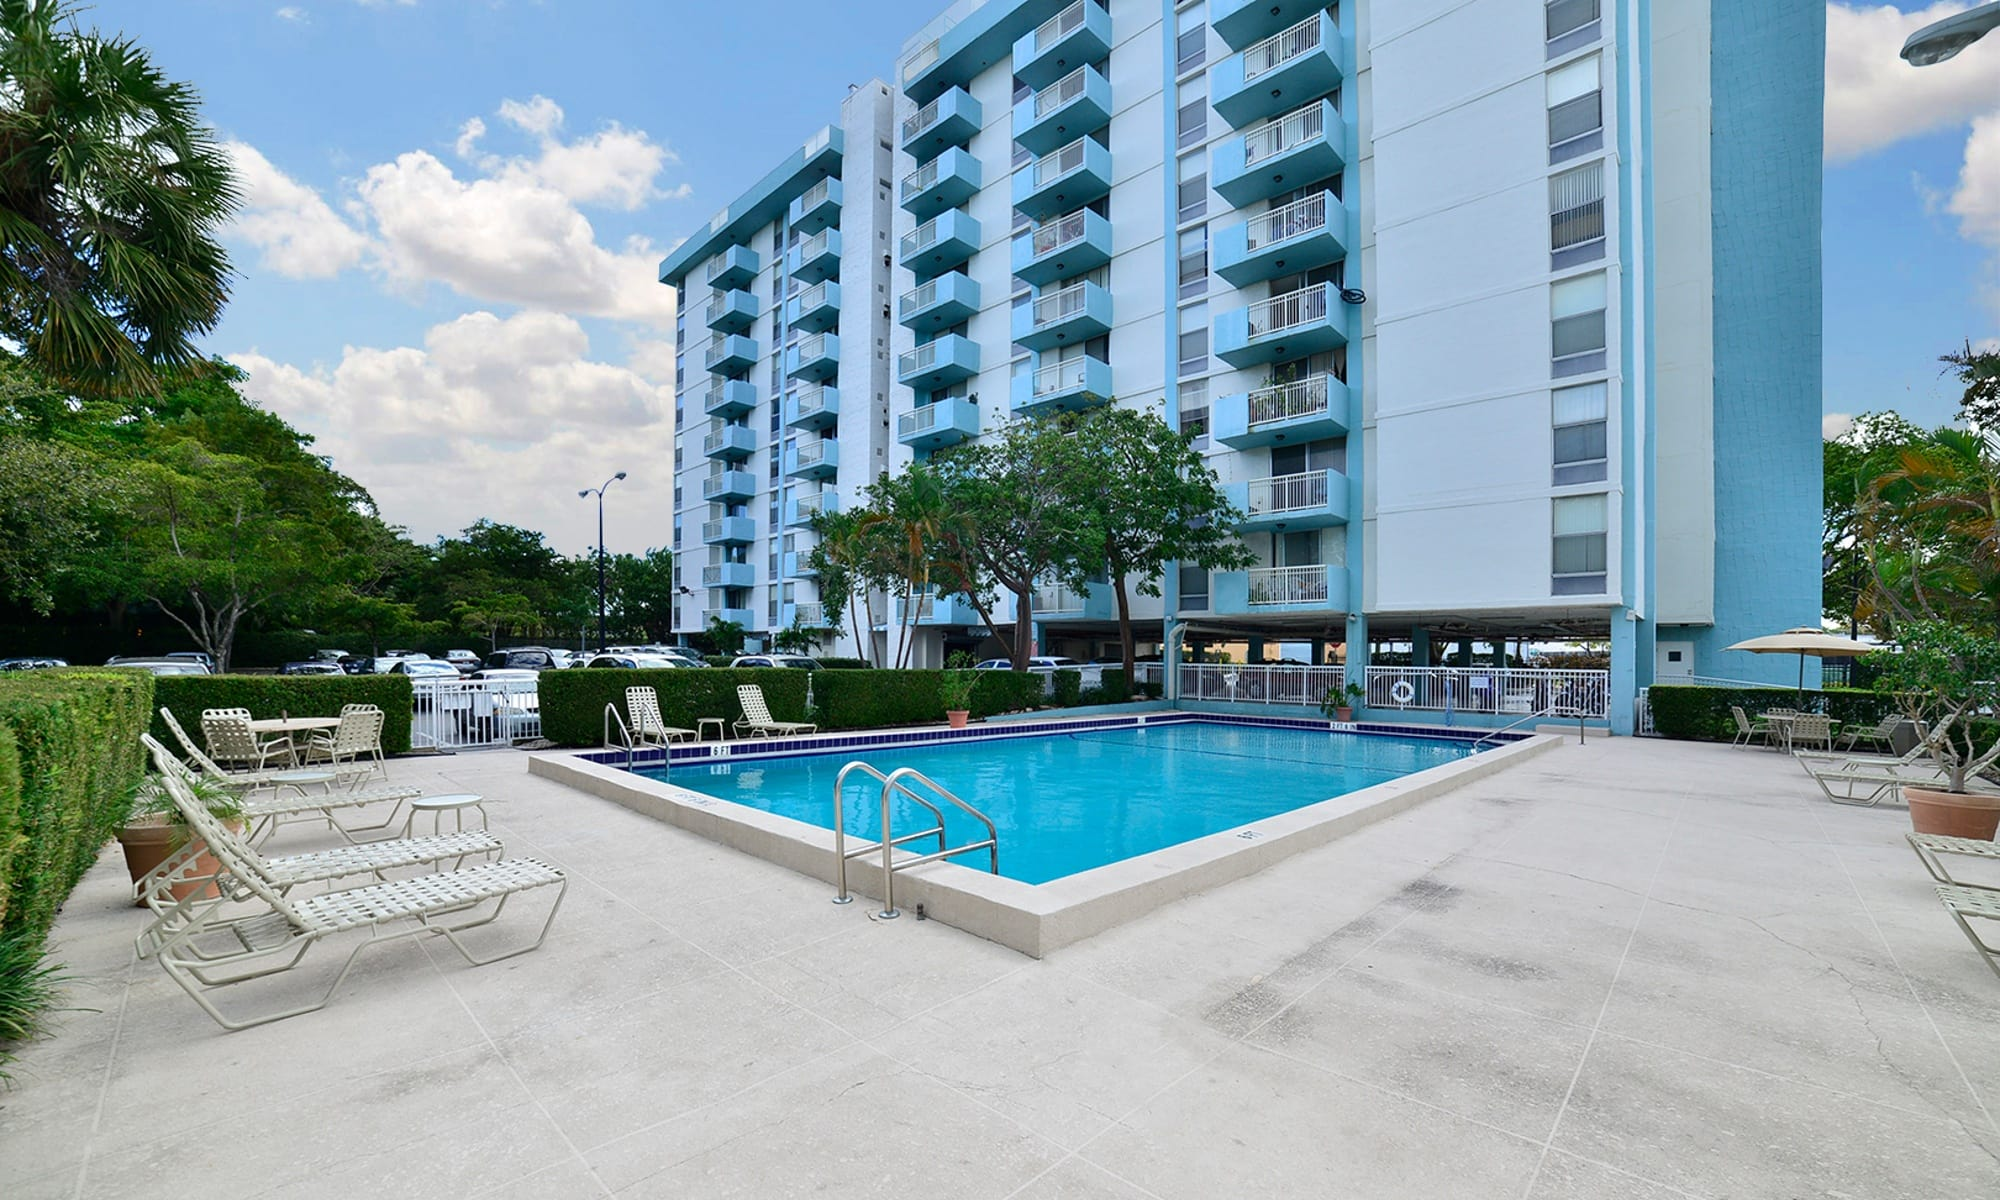 Apartments in North Miami, FL